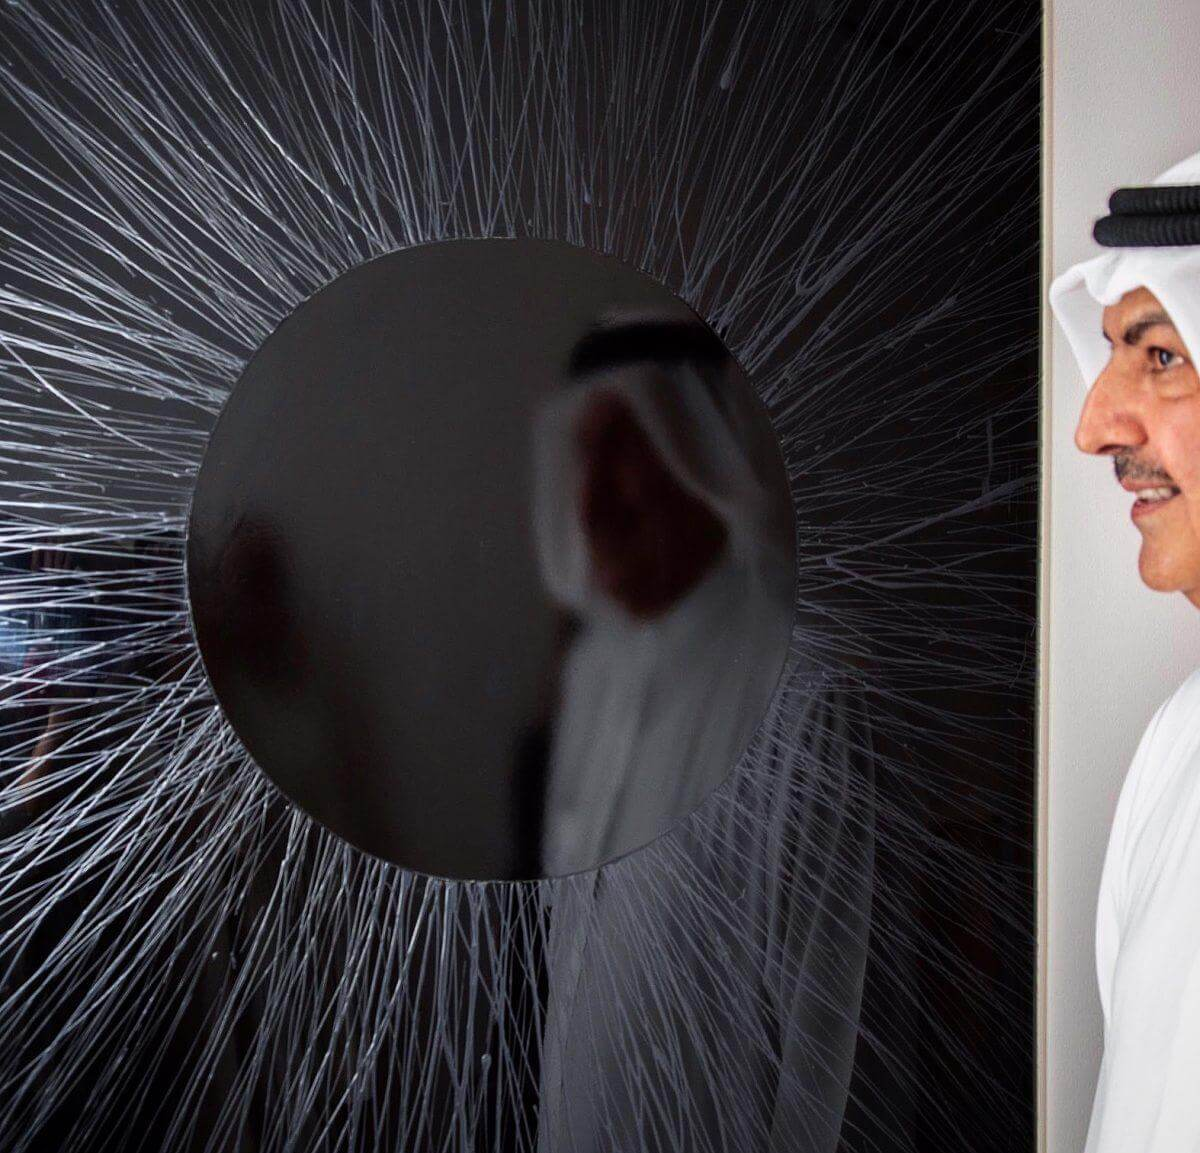 30 Years of Art - Sheikh Rashid Al Khalifa's Evolution of Style